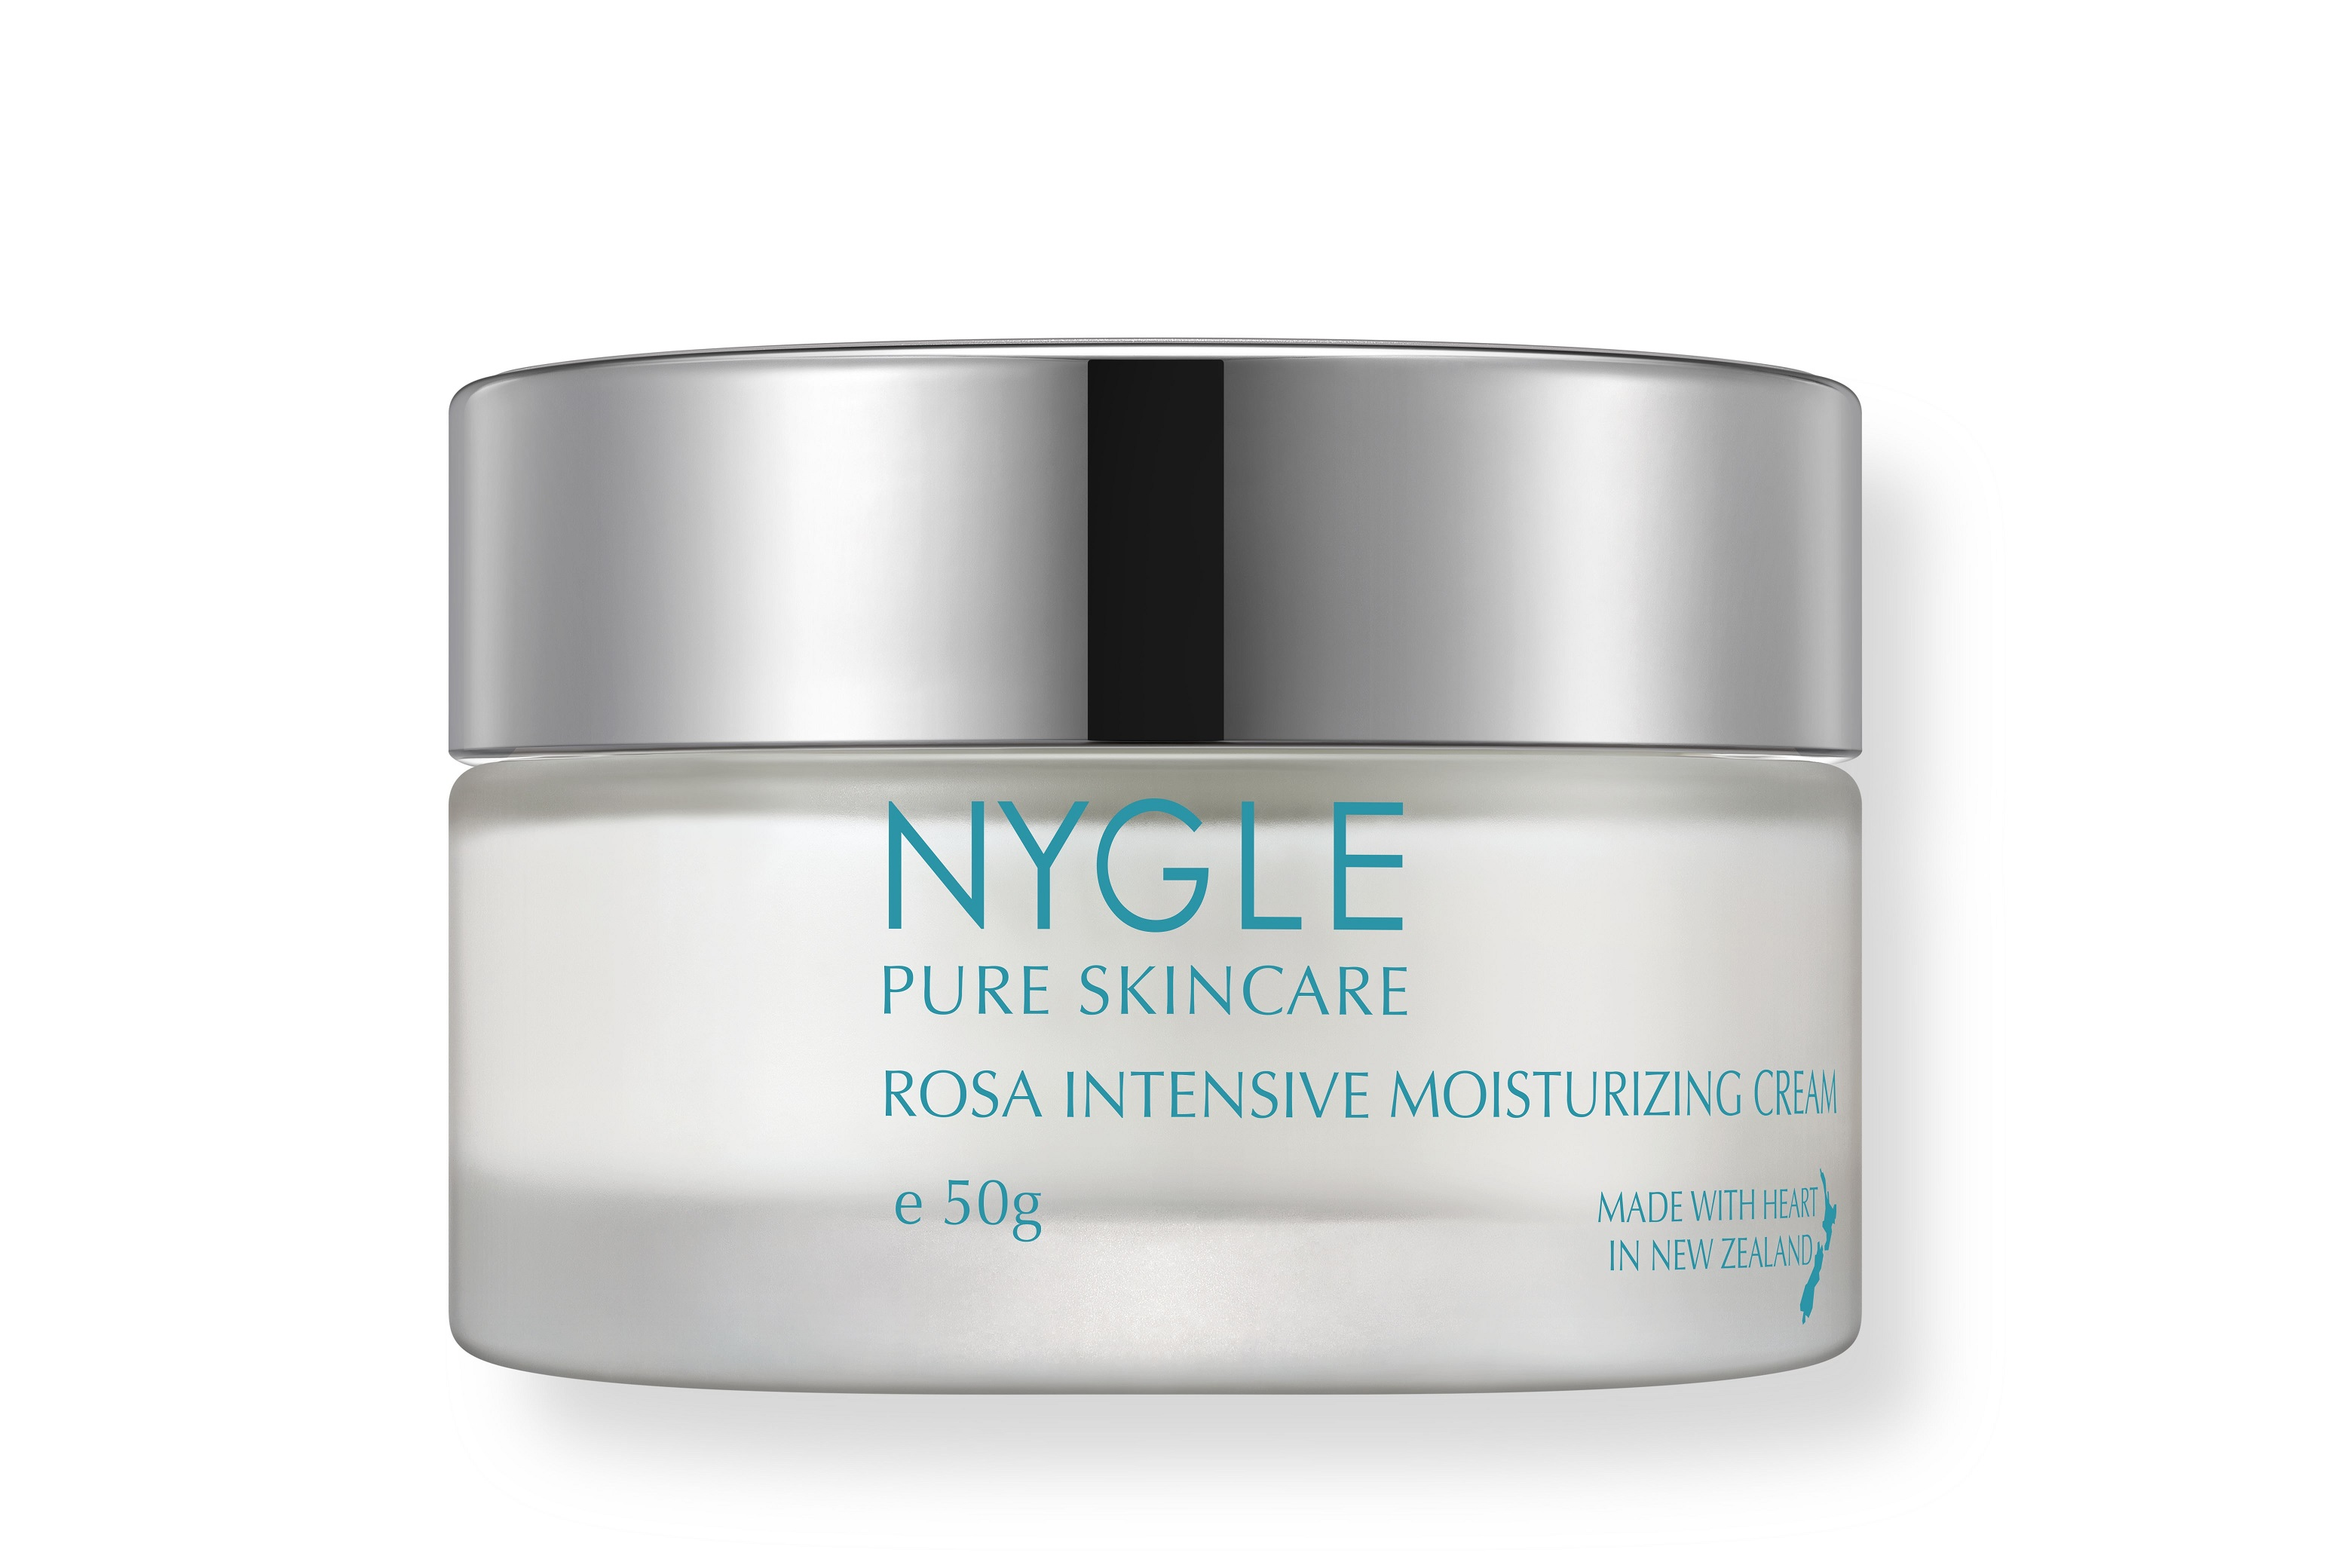 NYGLE Rosa Intensive Moisturizing Cream